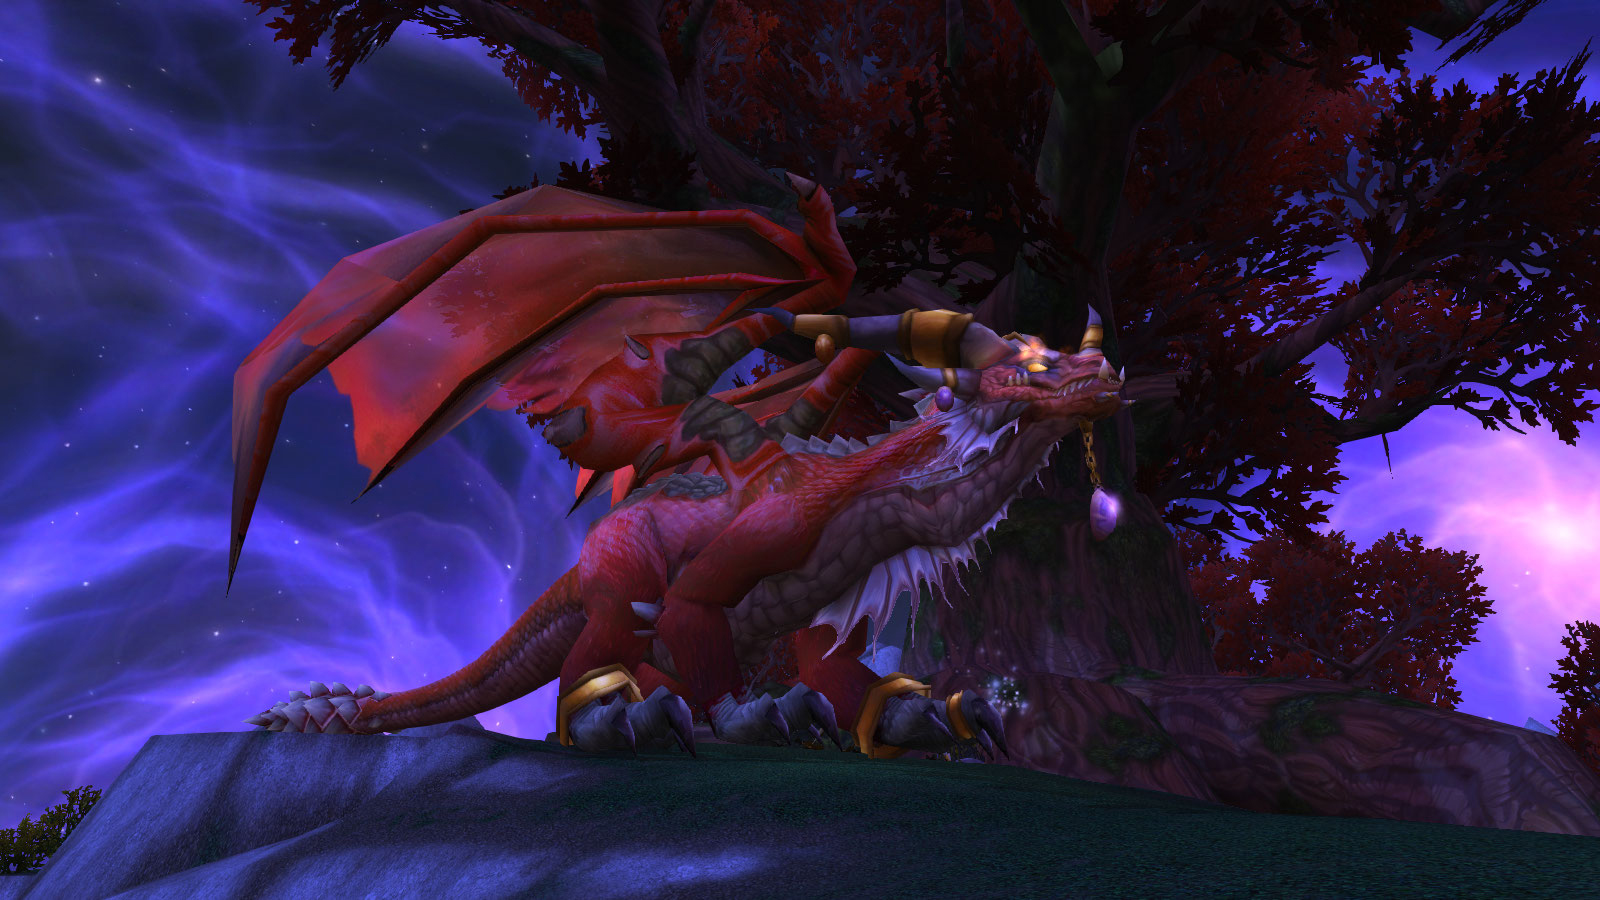 La Reine-dragon Alexstrasza dans World of Warcraft